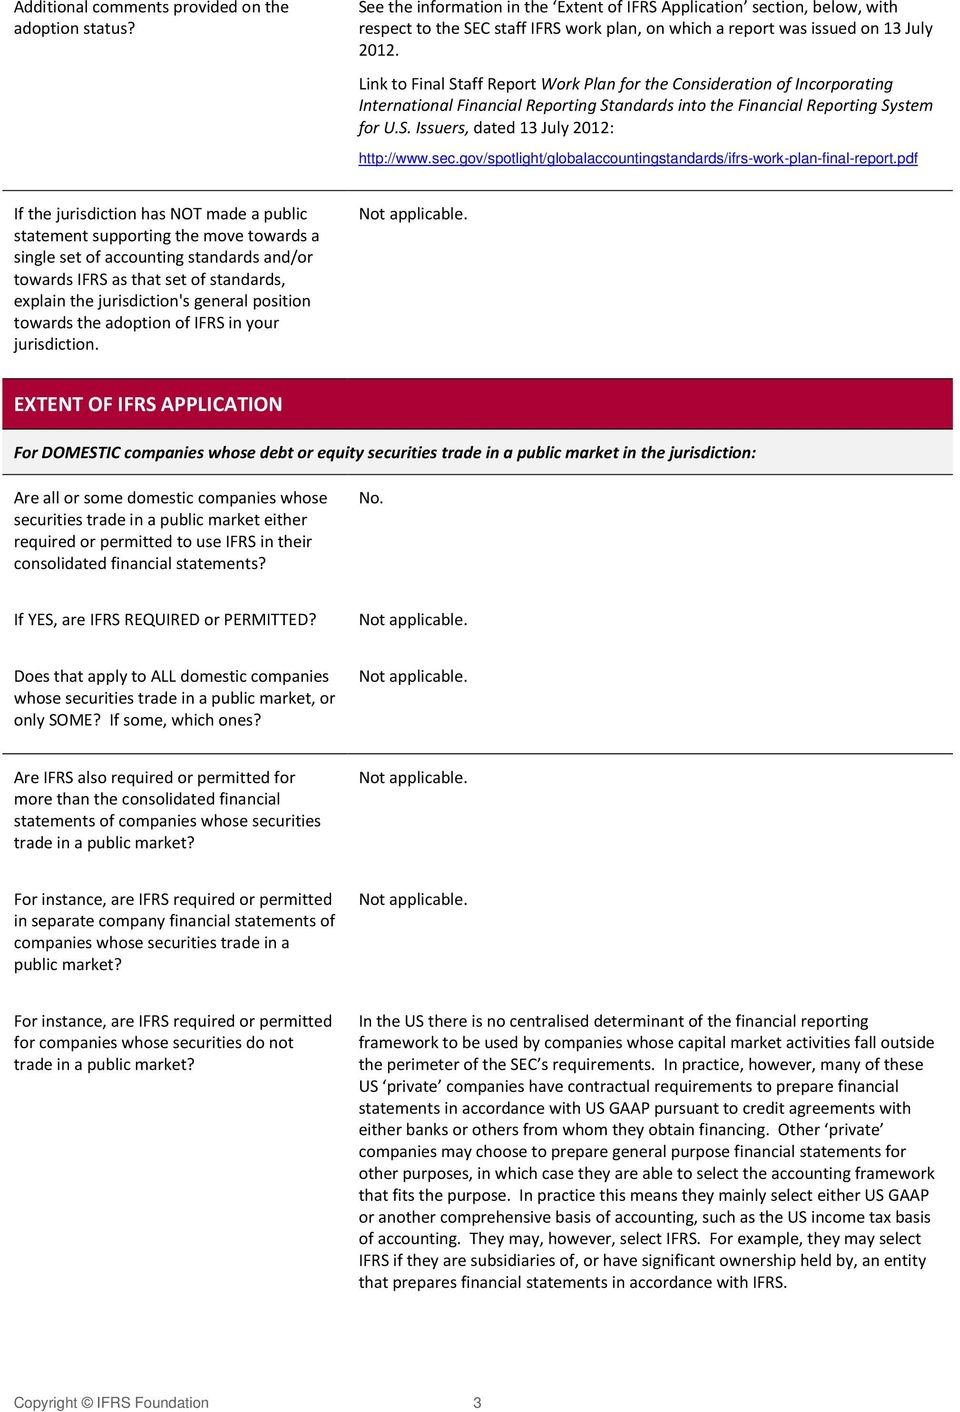 Link to Final Staff Report Work Plan for the Consideration of Incorporating International Financial Reporting Standards into the Financial Reporting System for U.S. Issuers, dated 13 July 2012: http://www.